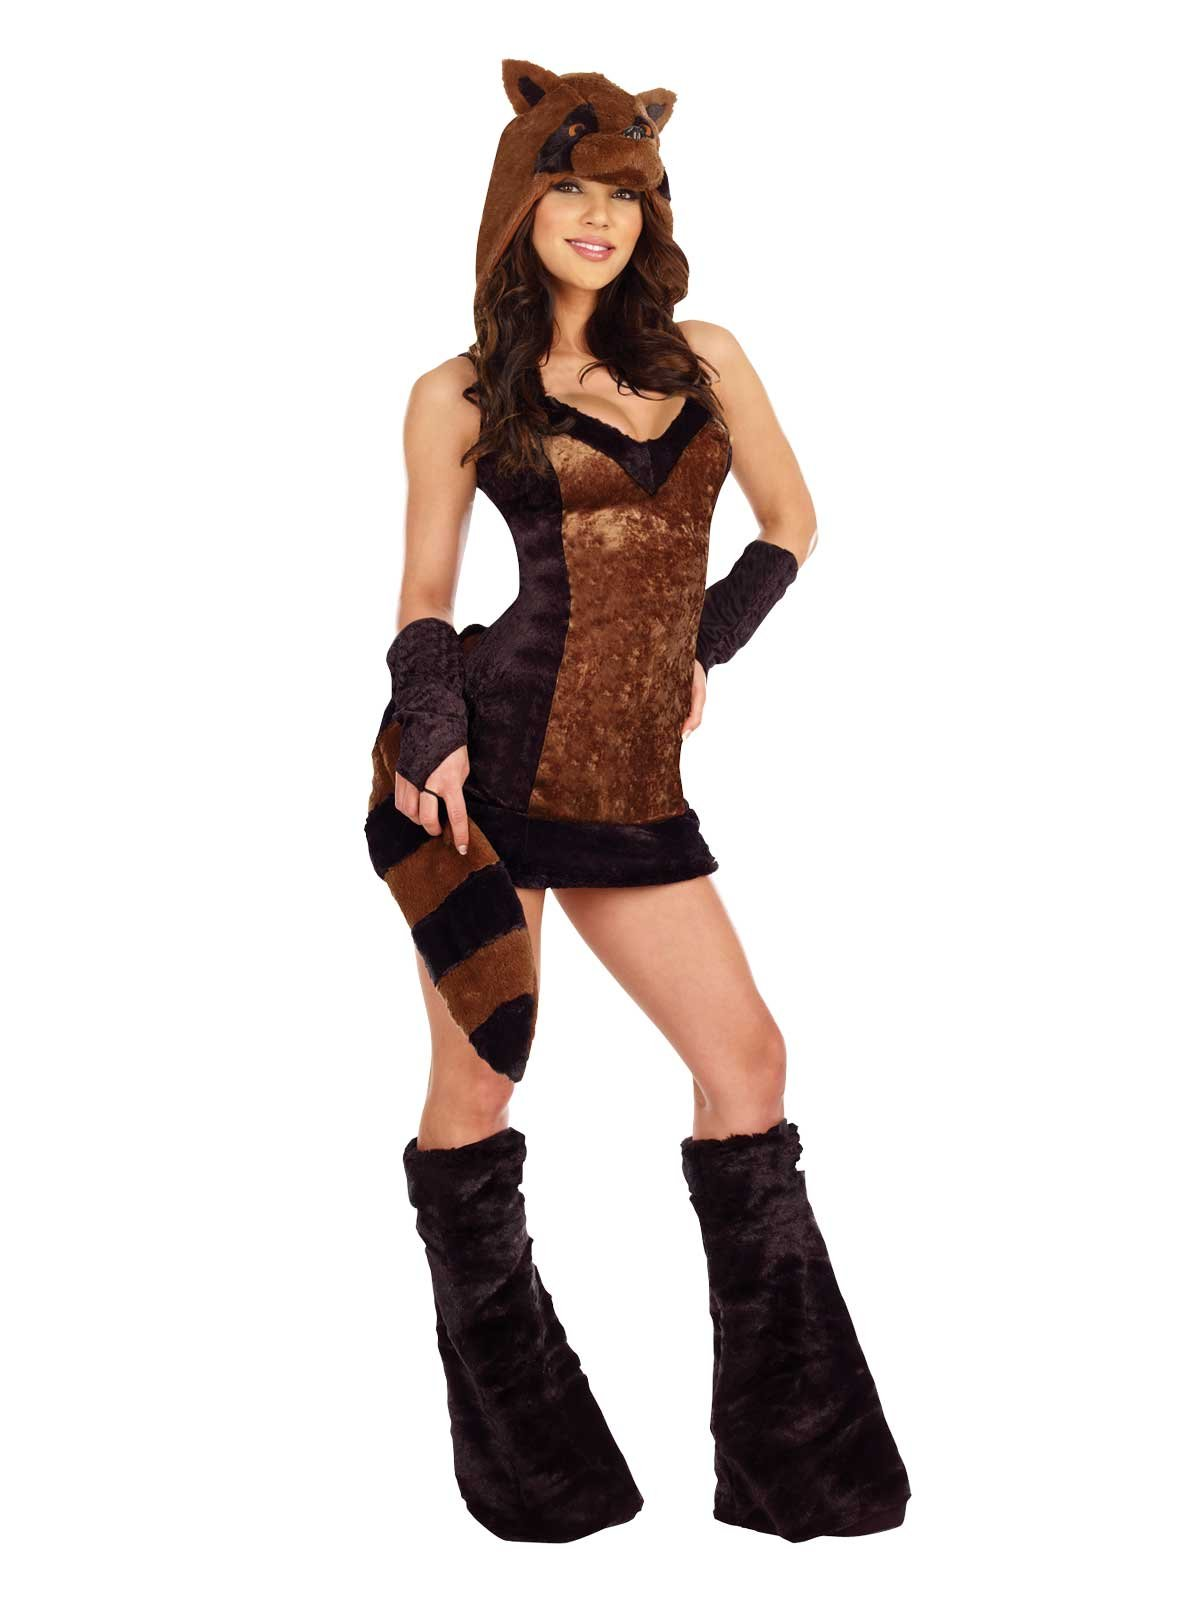 Life On the Hedge Raccoon Adult Plus Costume